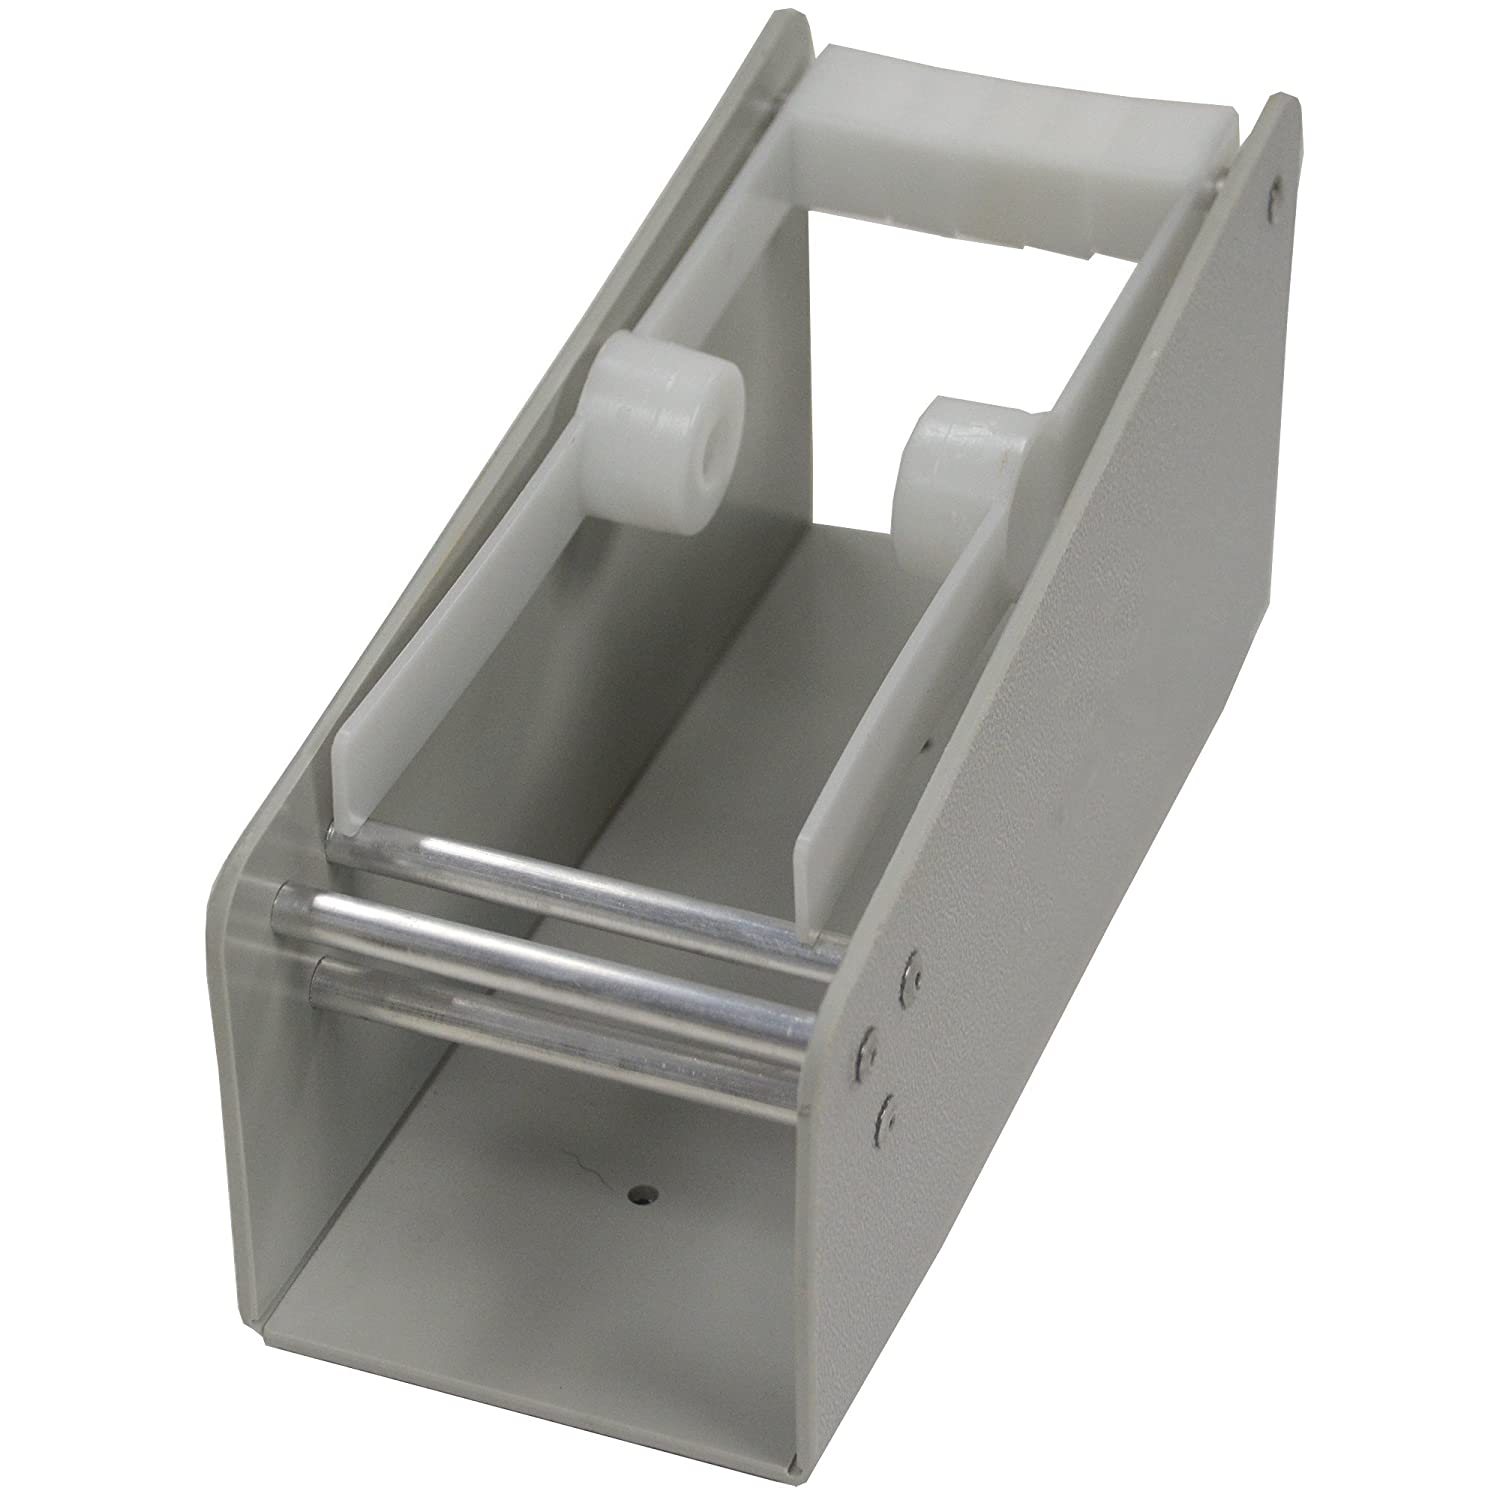 DayMark Plastic Label Max 73% OFF Dispenser Rack Holds Roll La of Free shipping New Wide 2